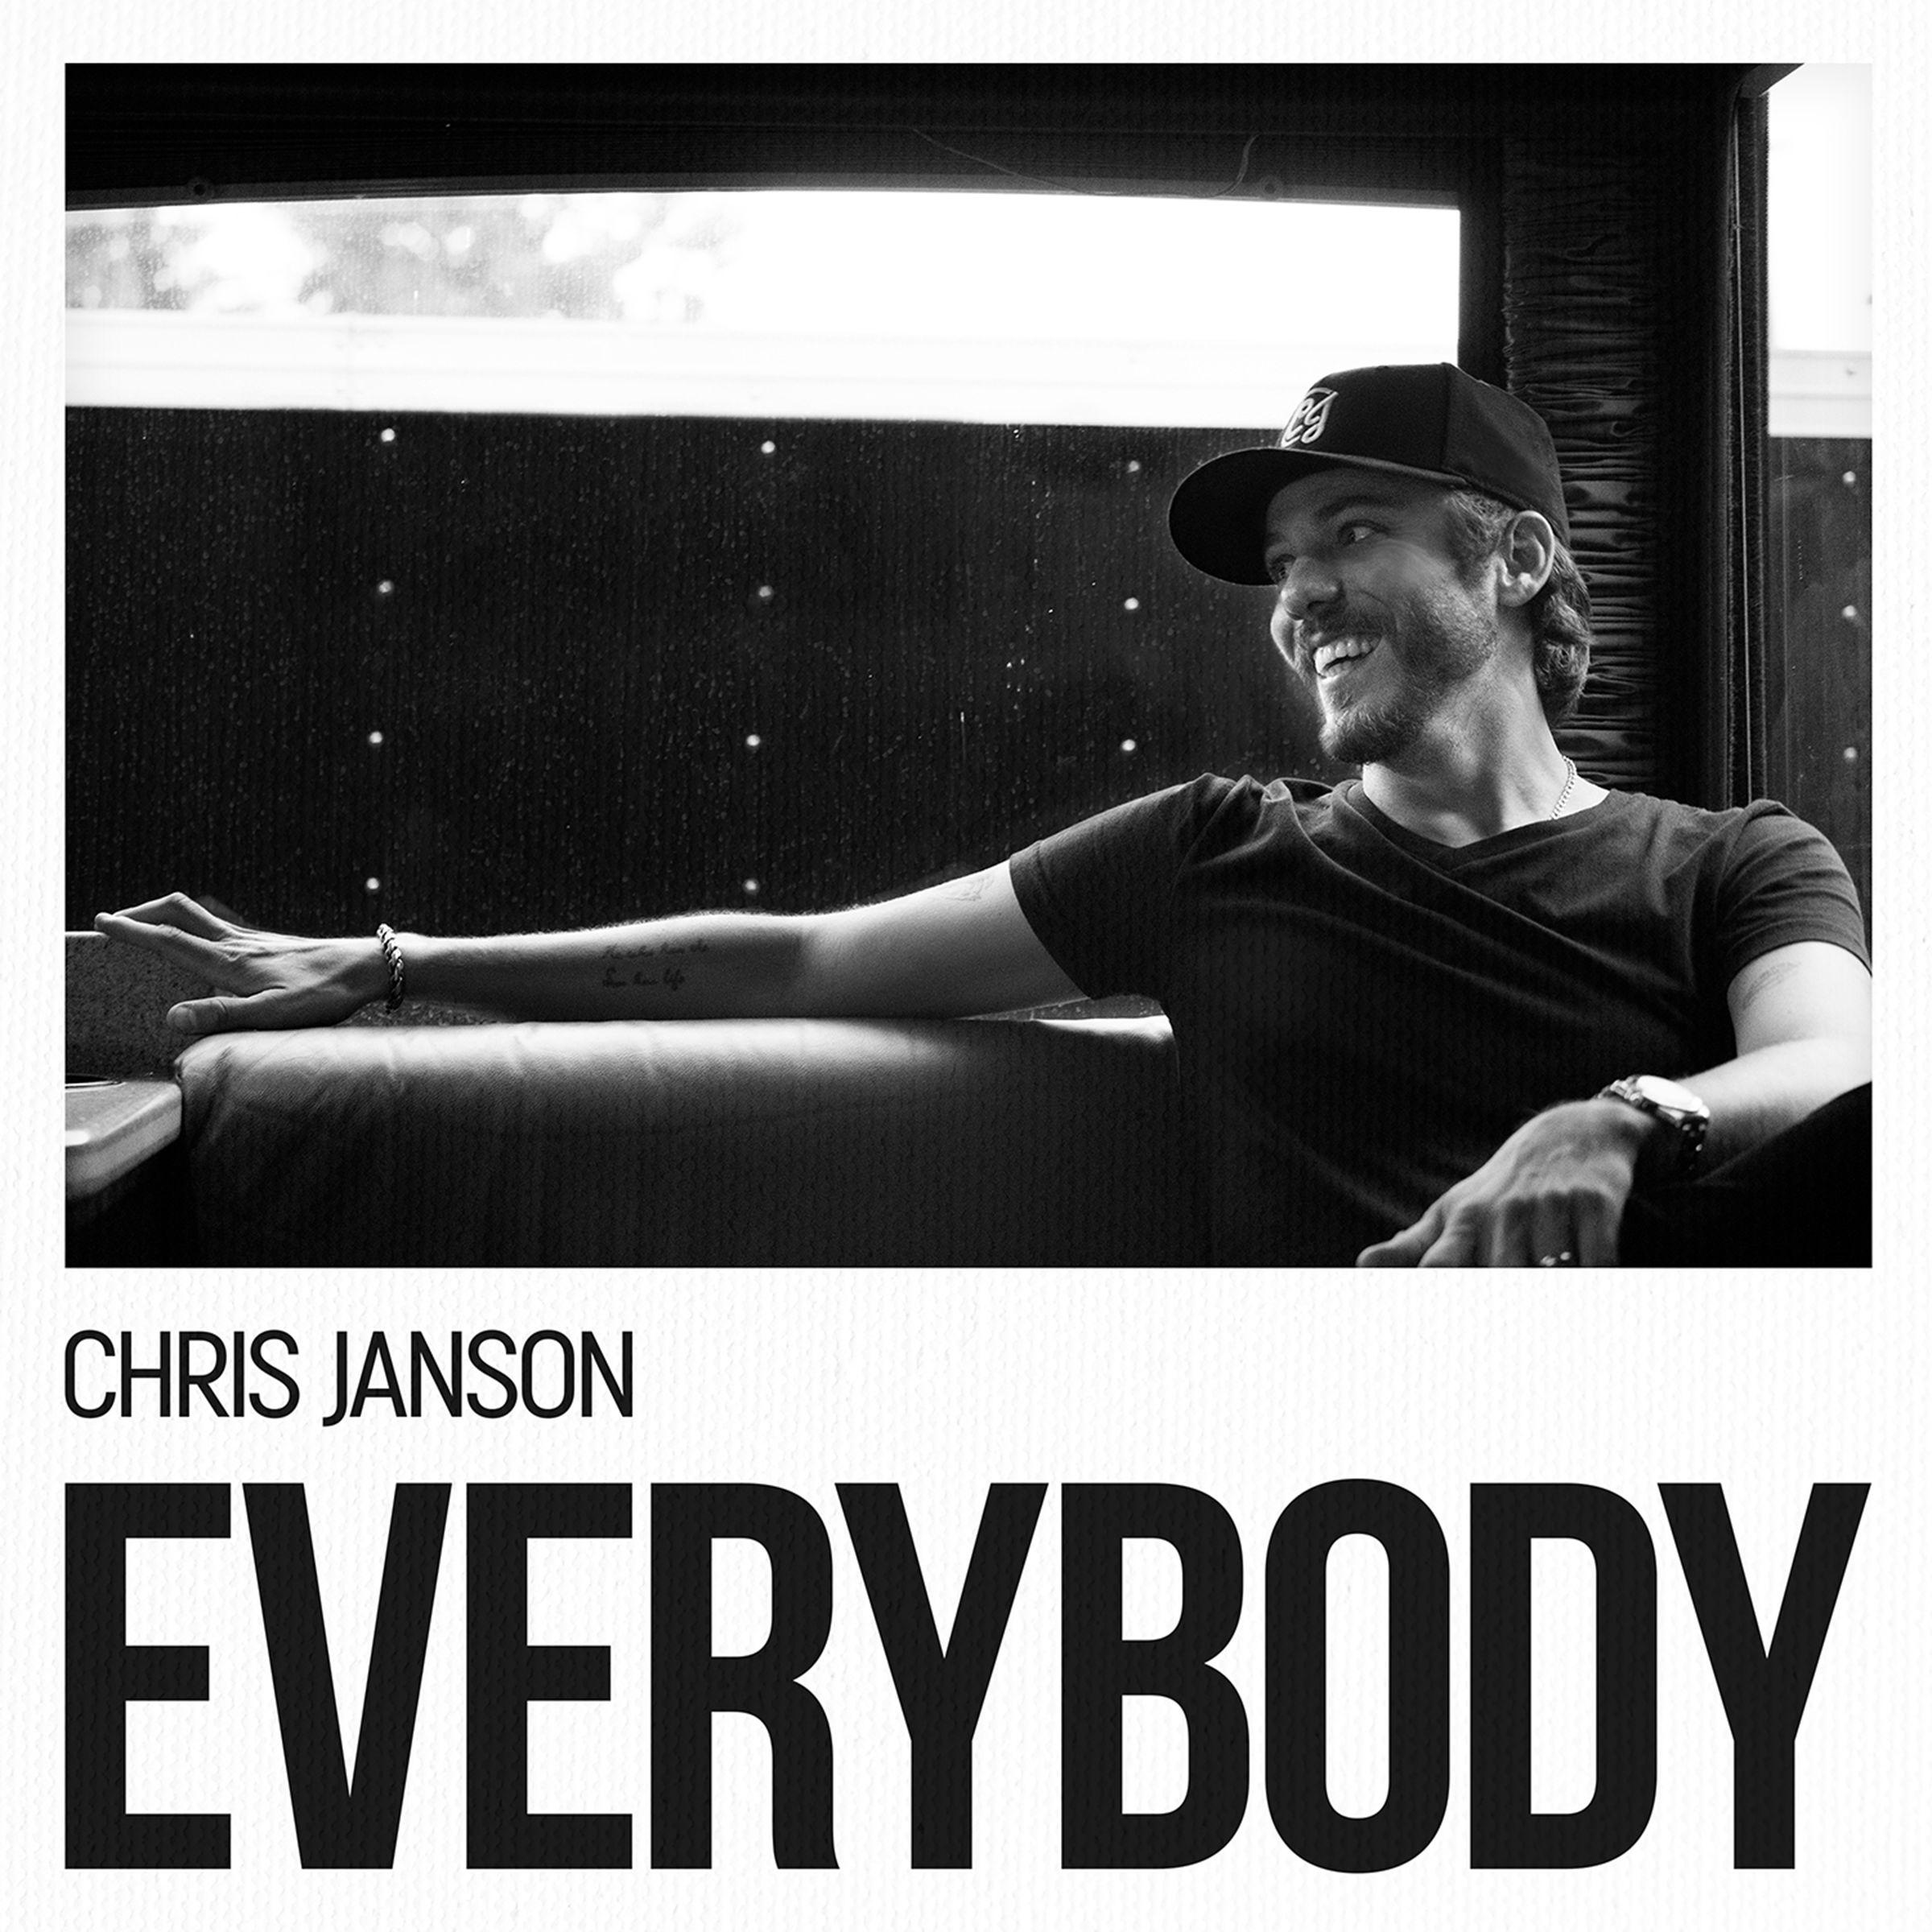 Chris Janson - Drunk Girl 清澈乡村